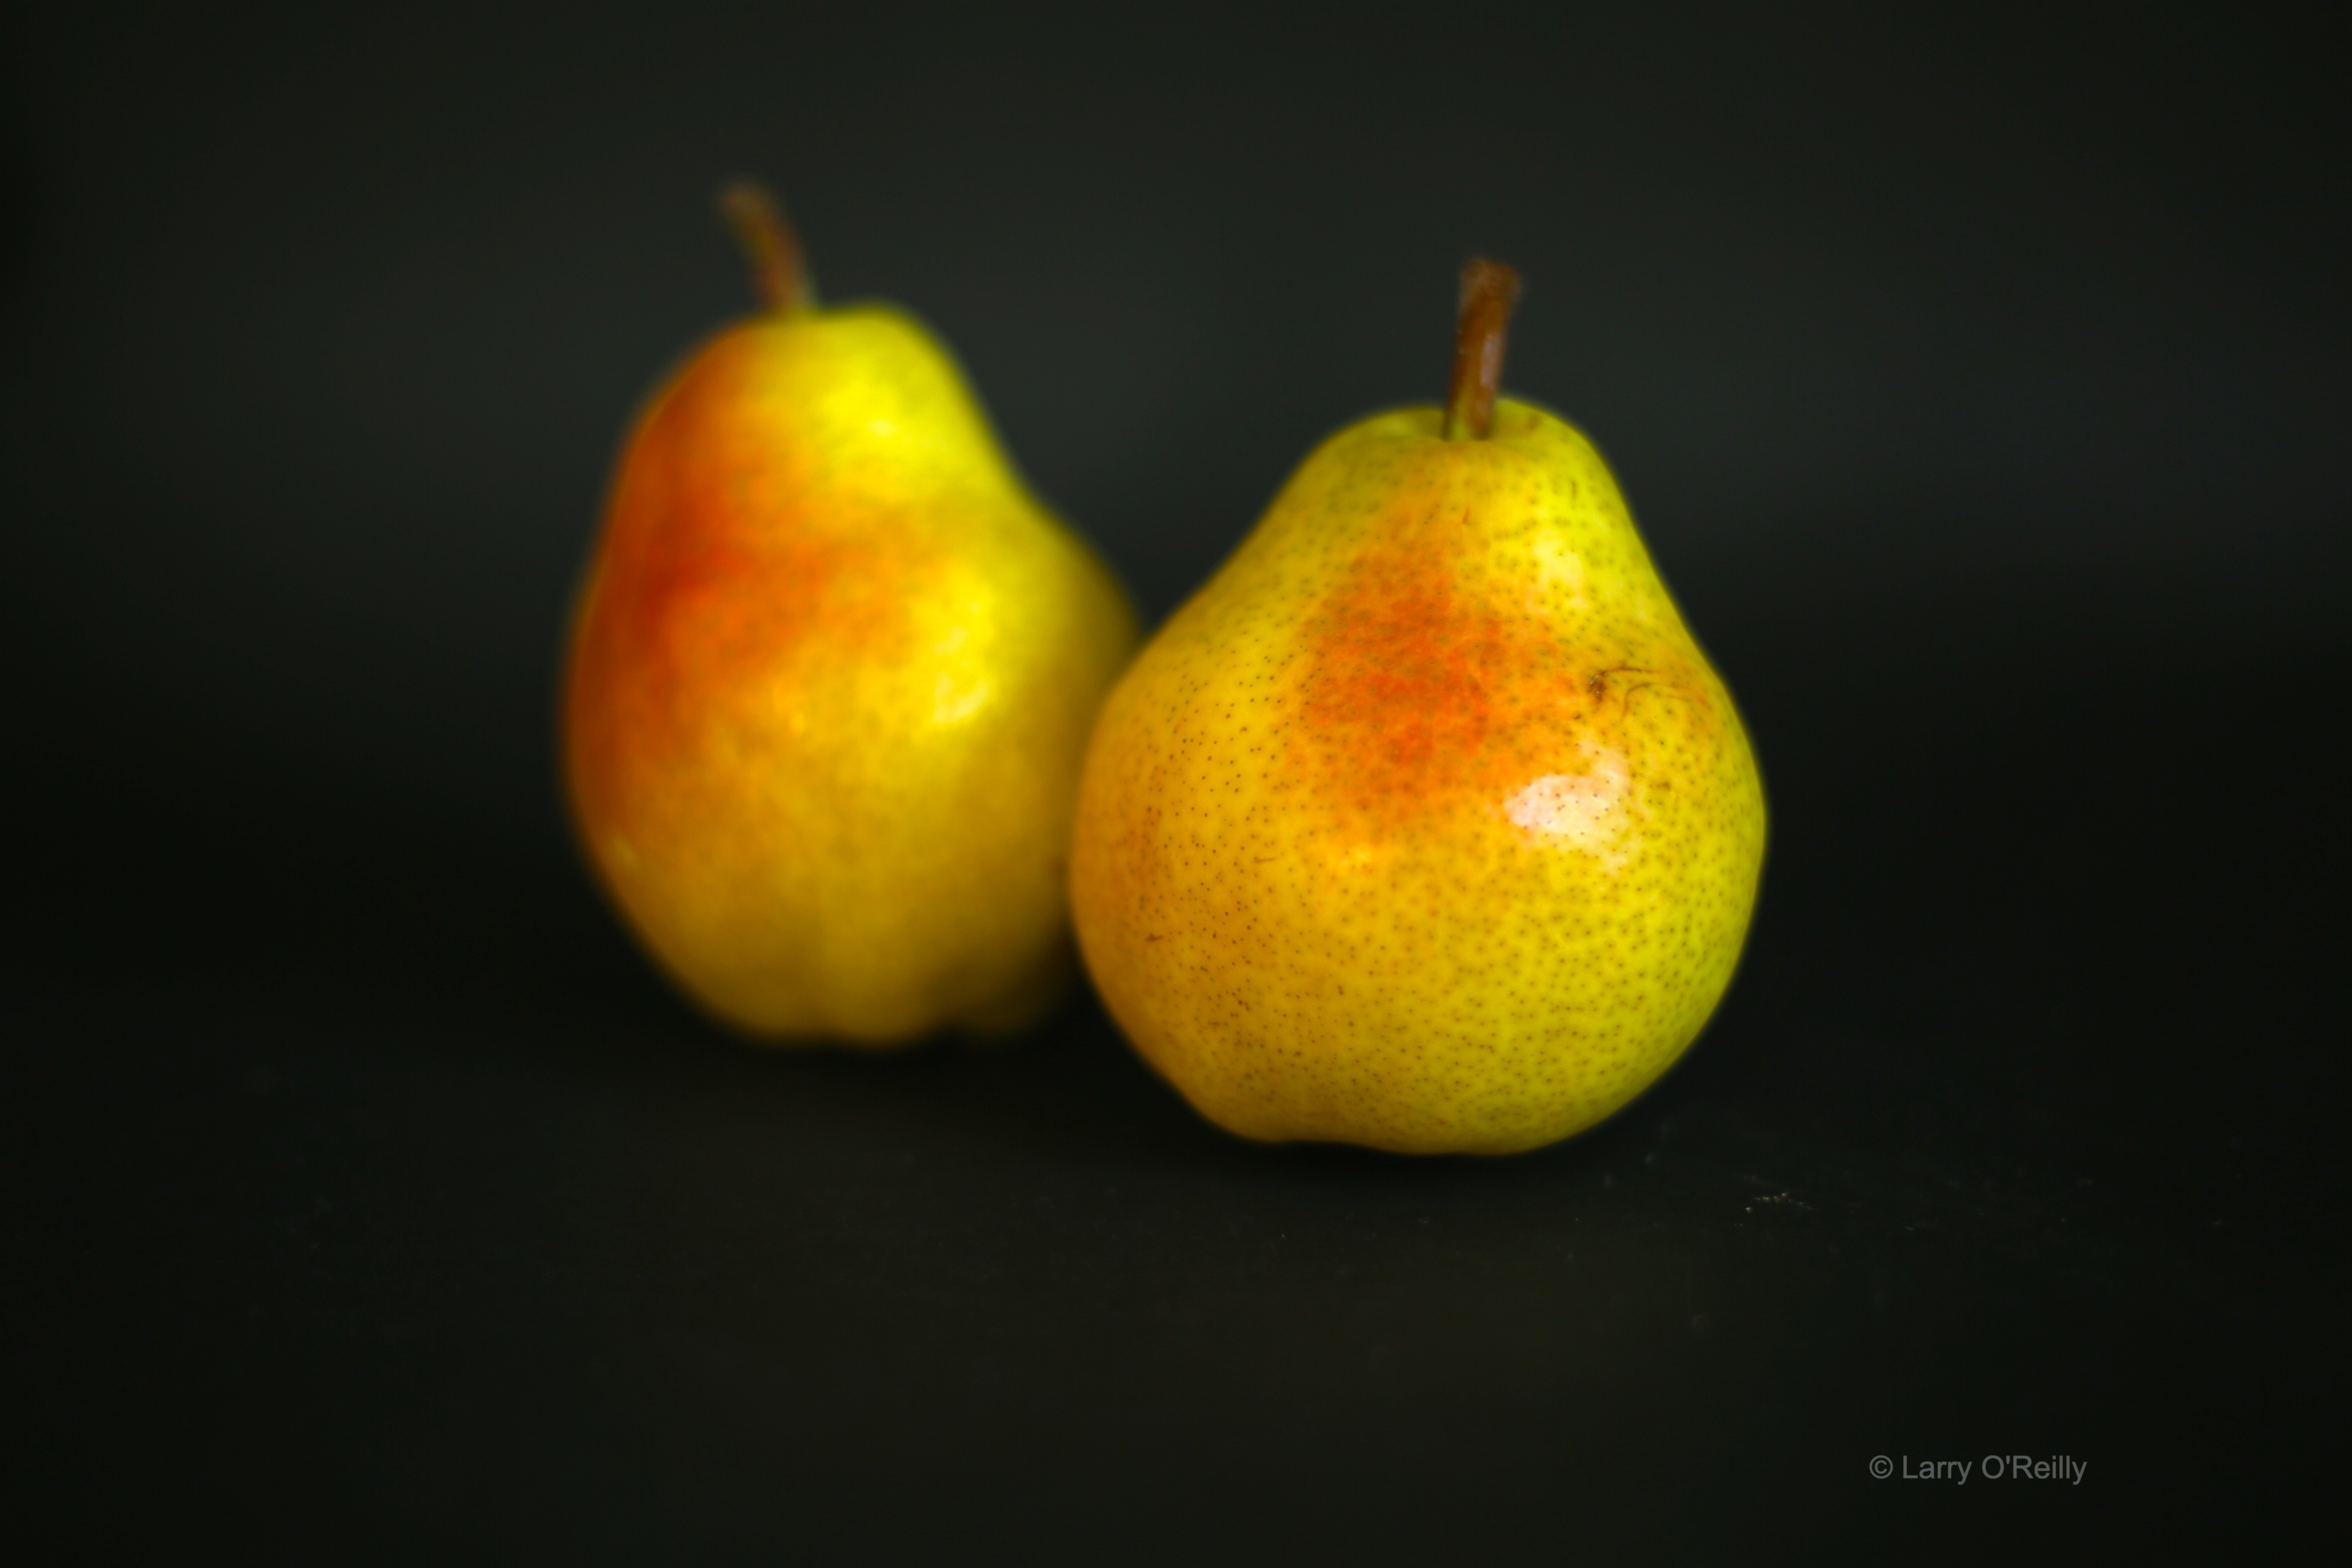 Two Pears, One out of Focus